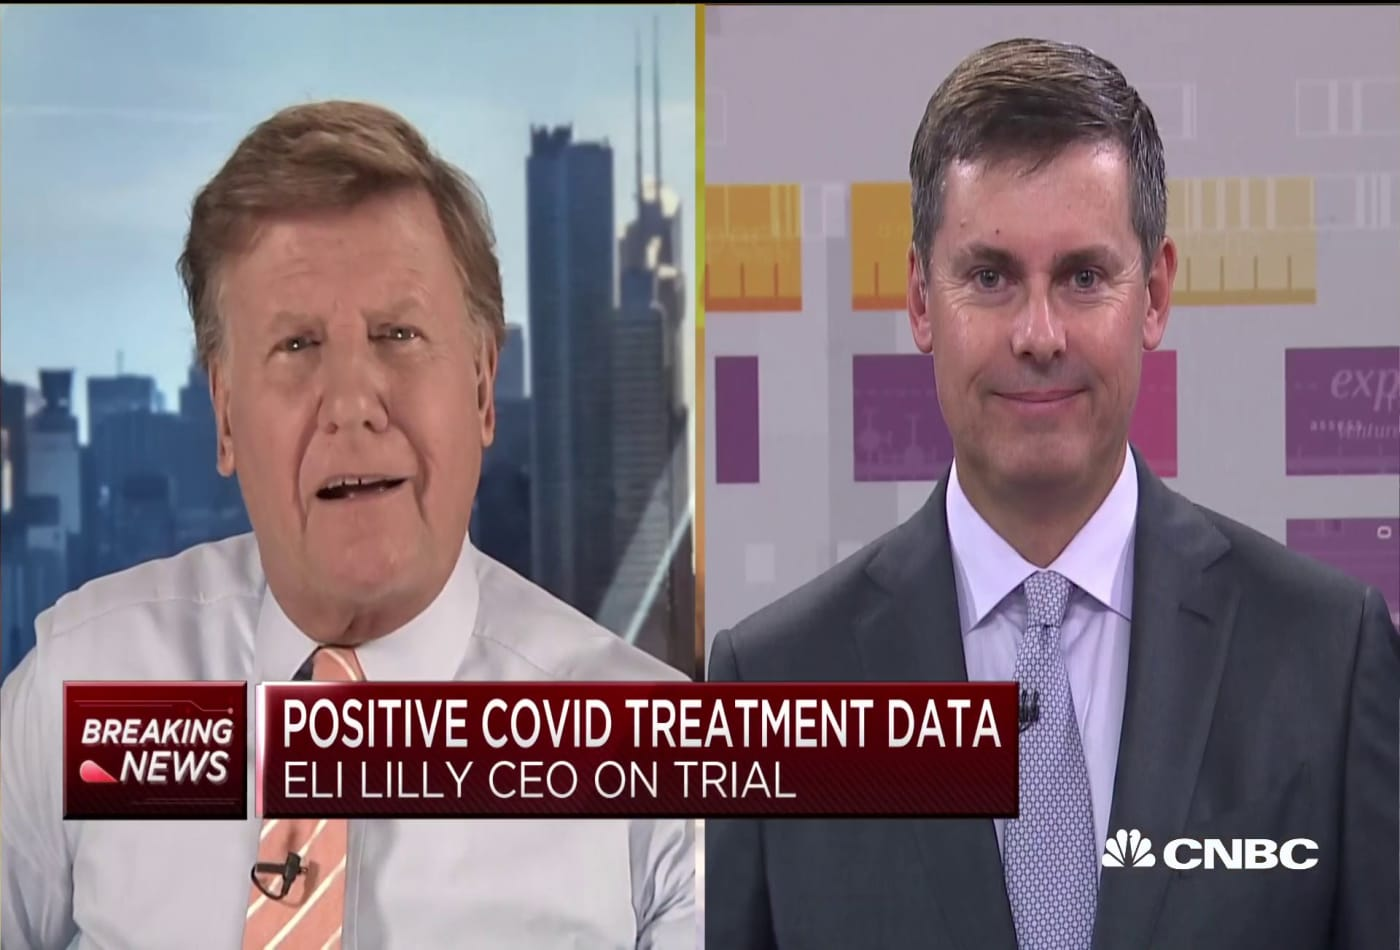 Eli Lilly CEO on drug that could aid Covid-19 recovery when paired with remdesivir